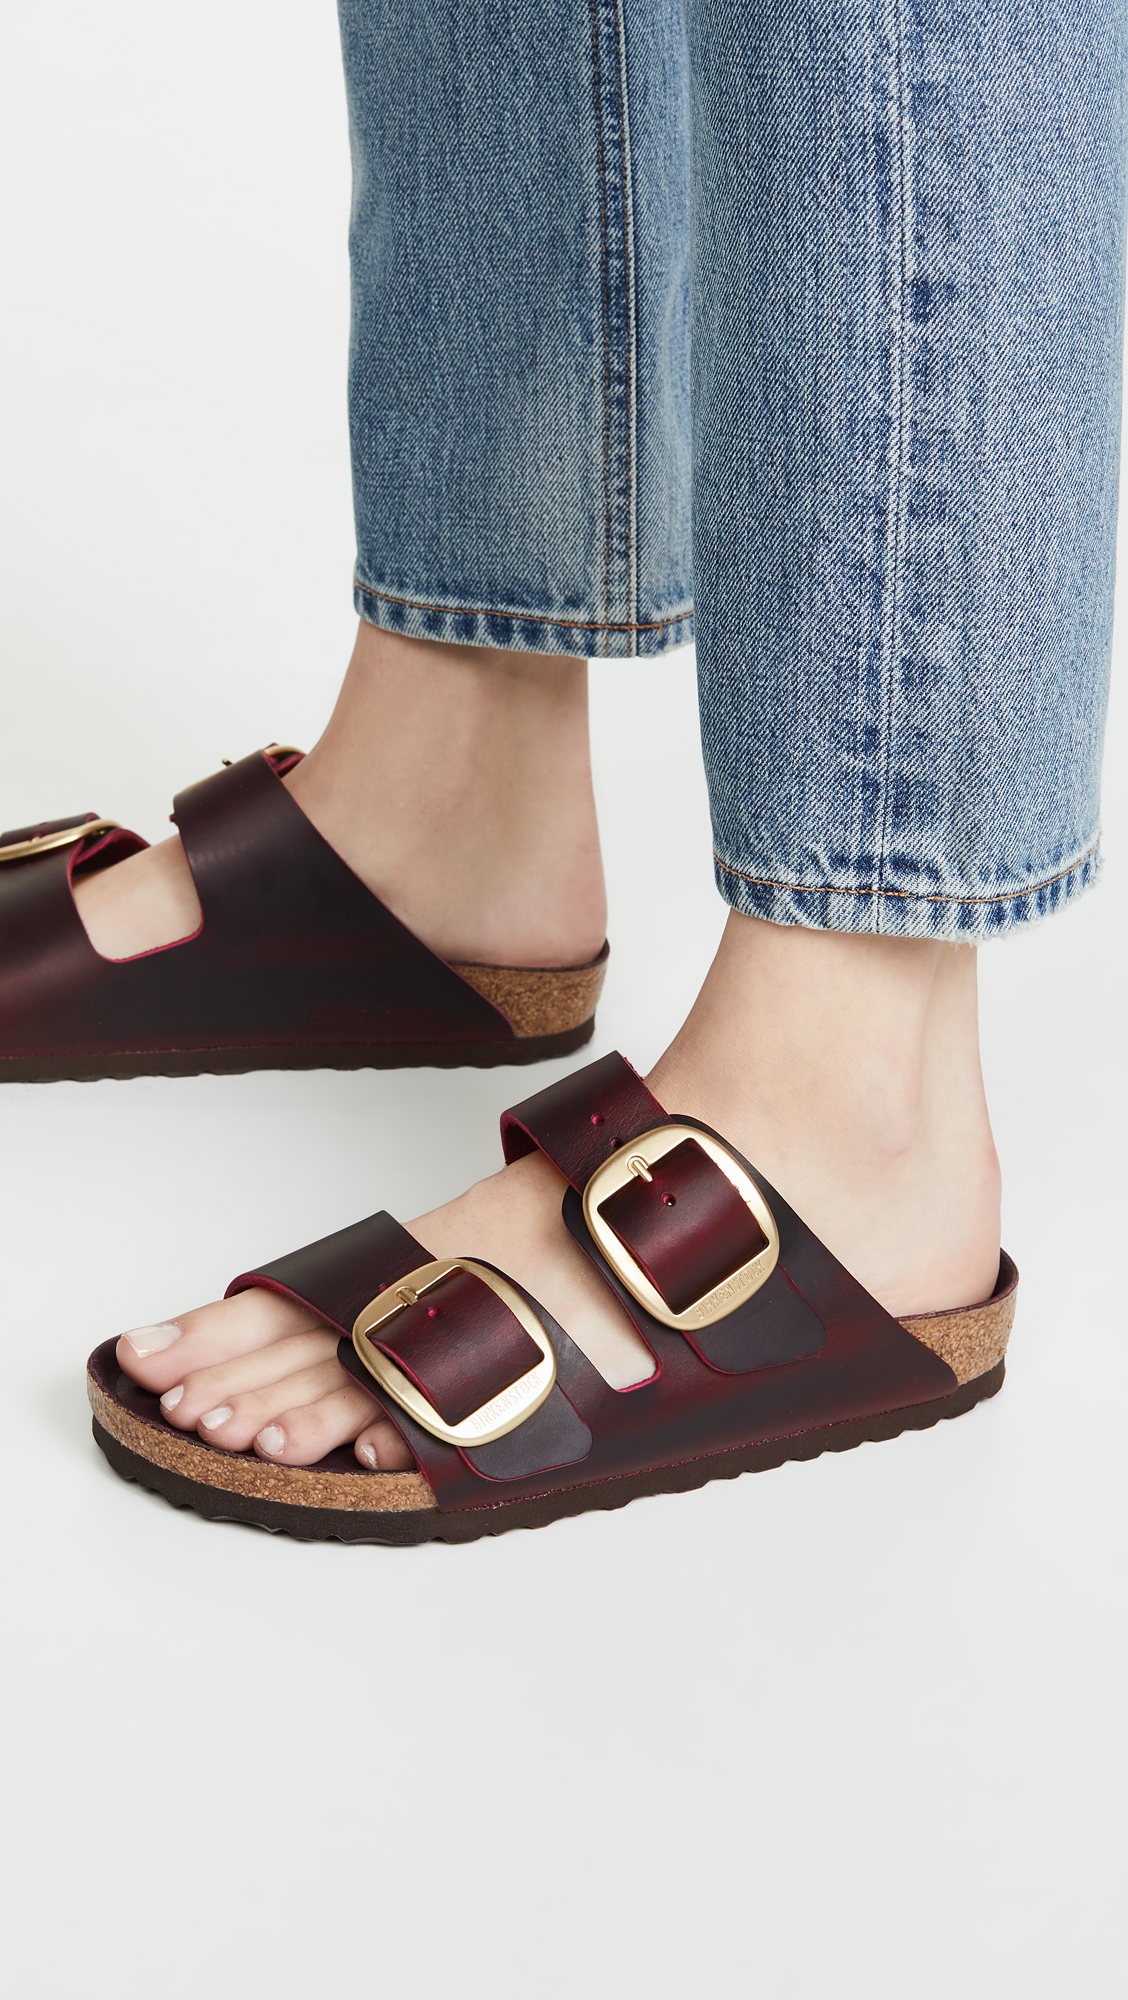 Big Buckle Birkenstock Slides